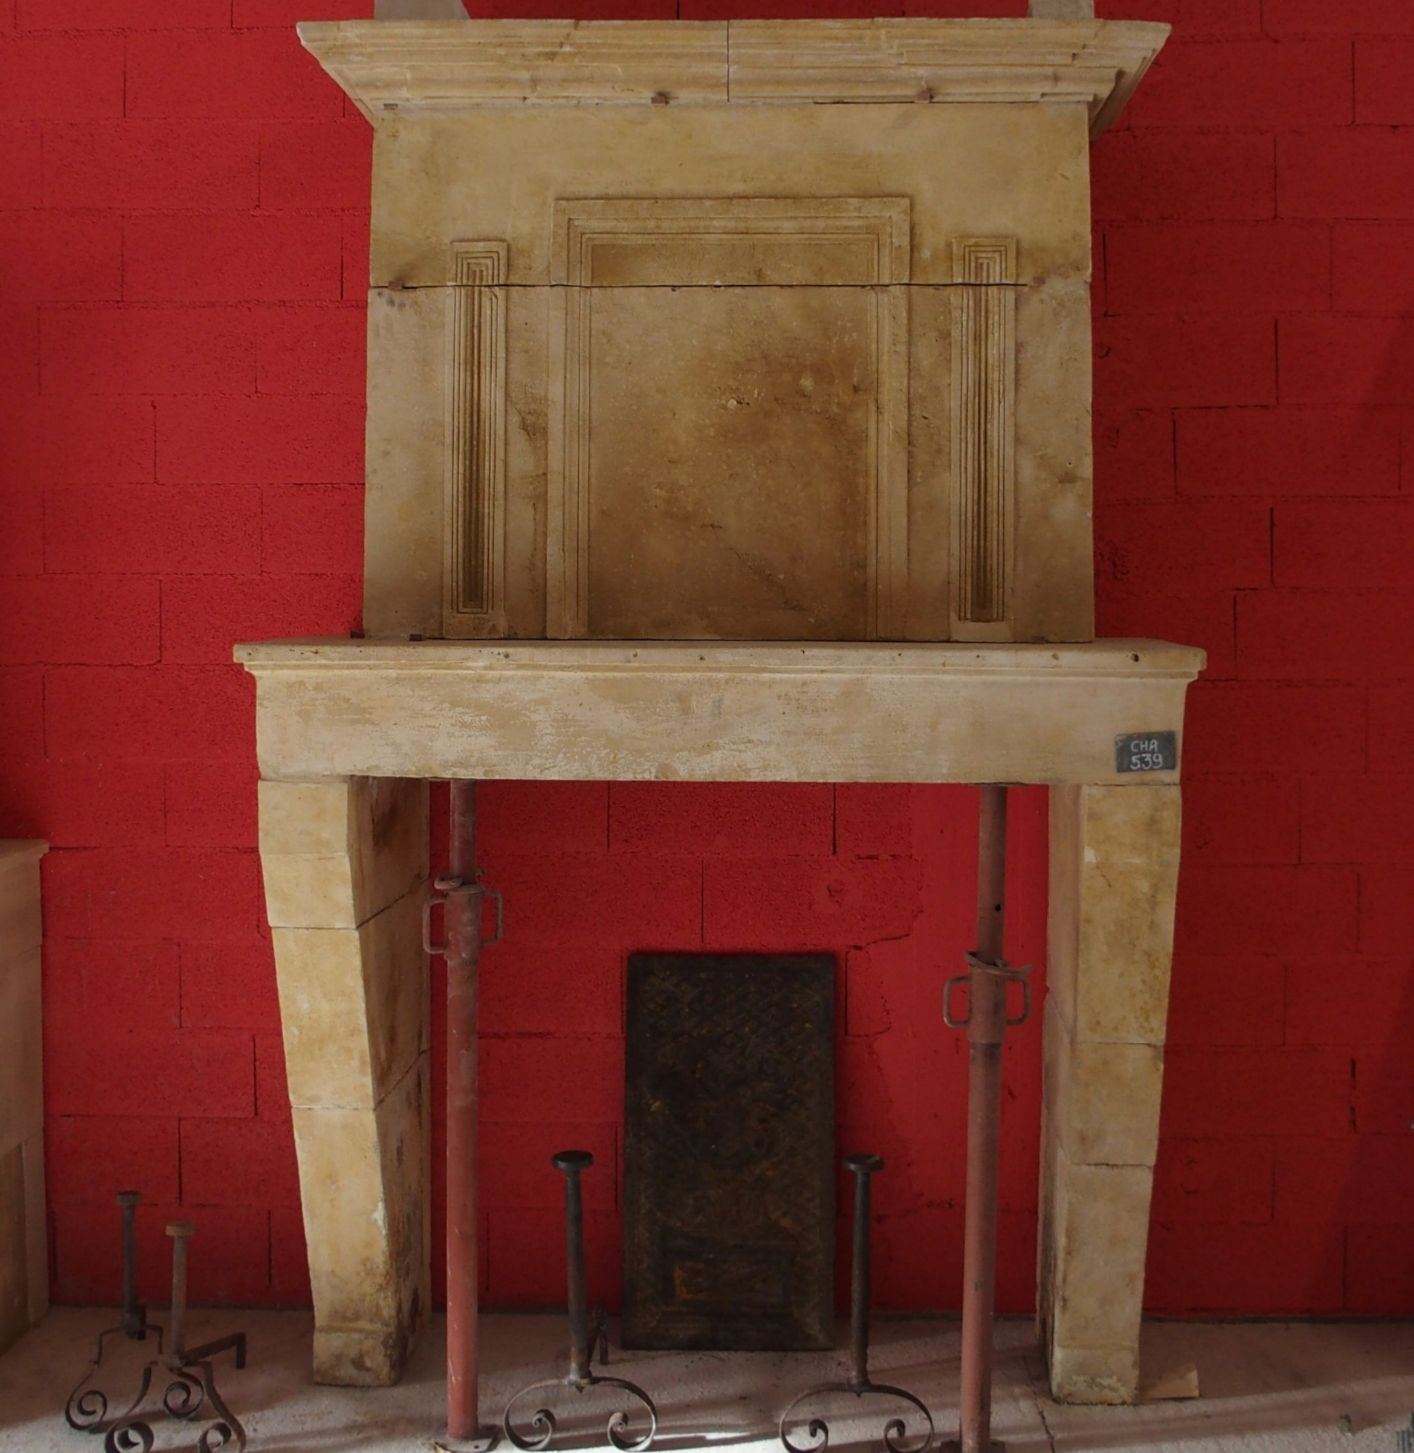 Beautiful old stone fireplace - fireplace with overmantle.